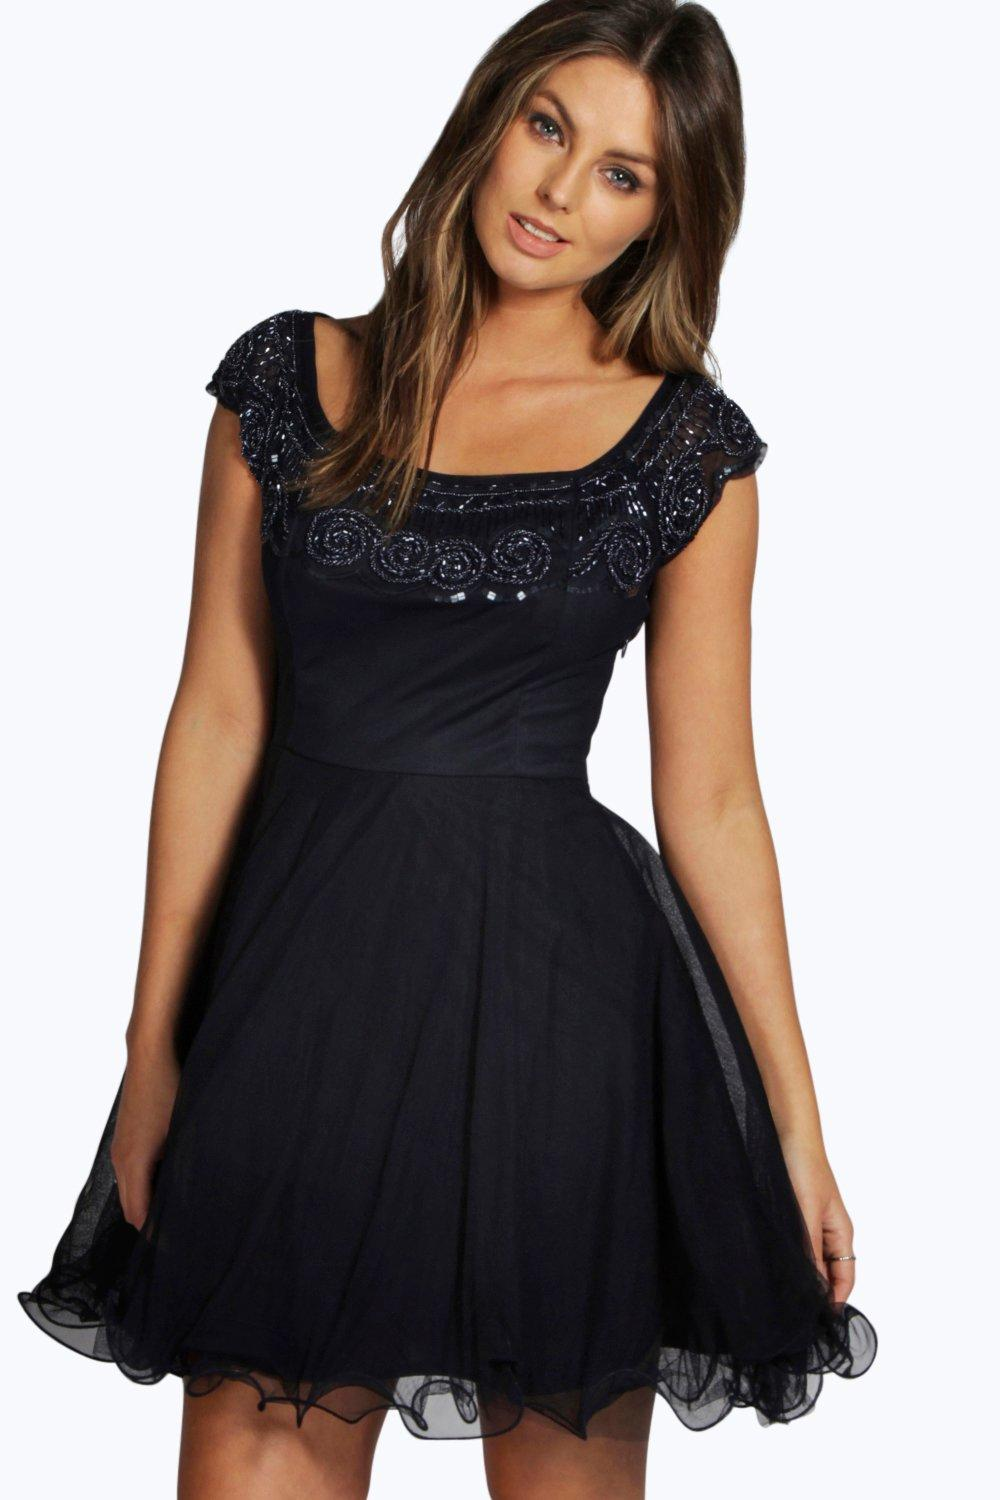 Boutique Clara Embellished Tutu Skirt Prom Dress